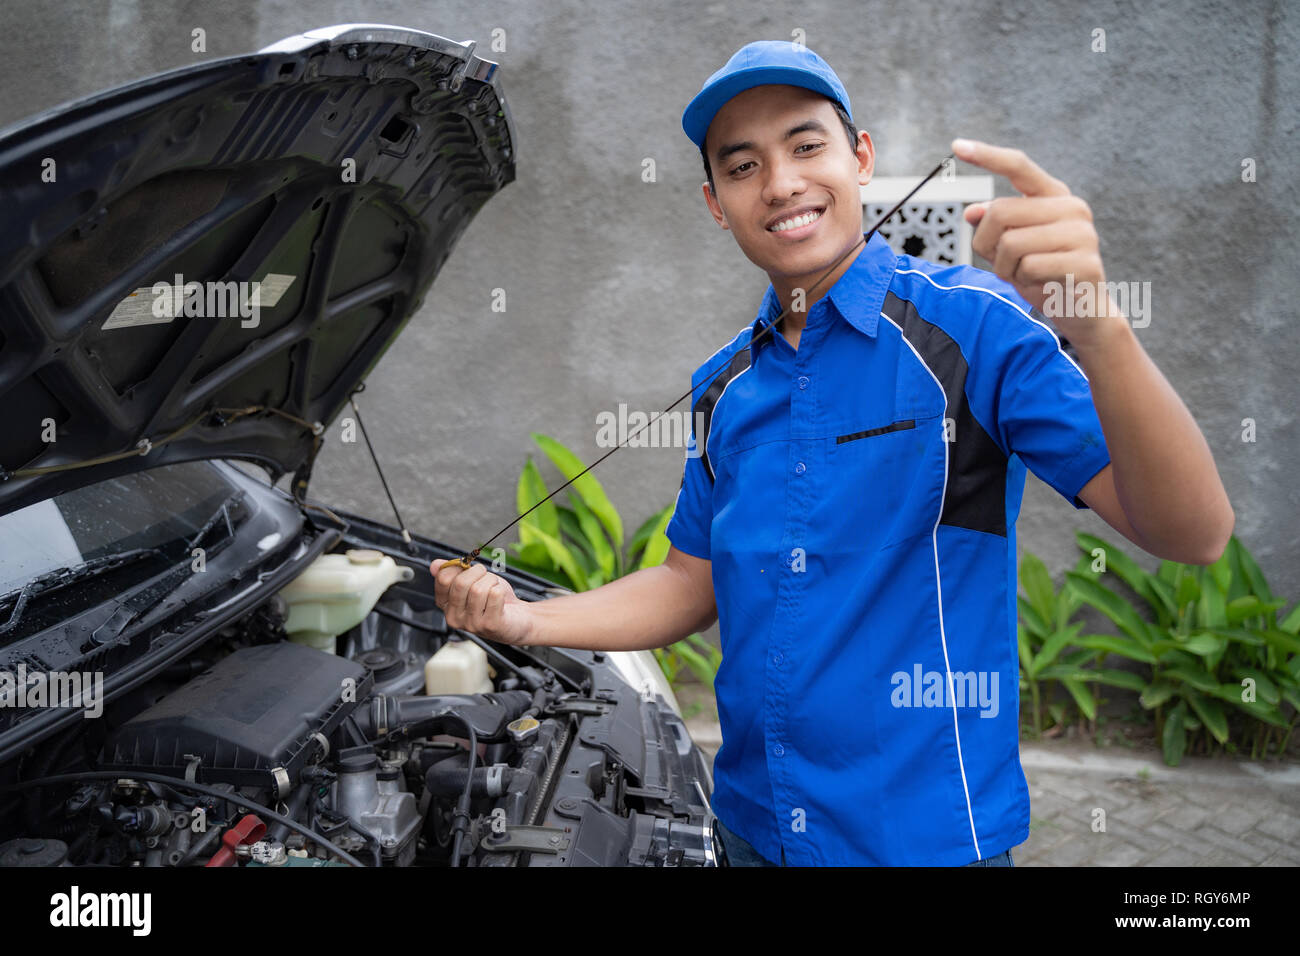 mechanic with uniform inspecting the car oil - Stock Image